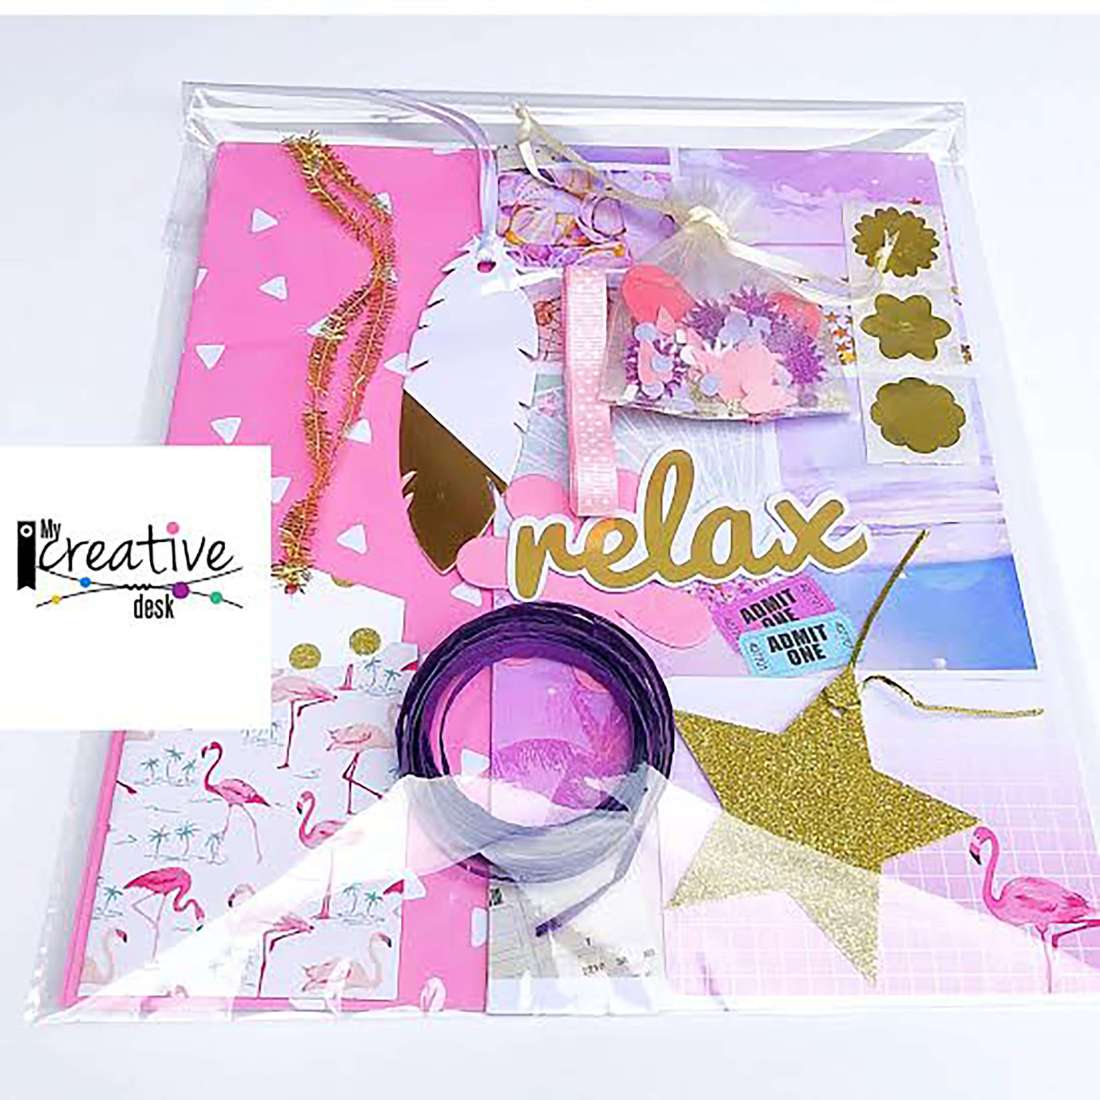 My Creative Desk - Gift wrapping pack